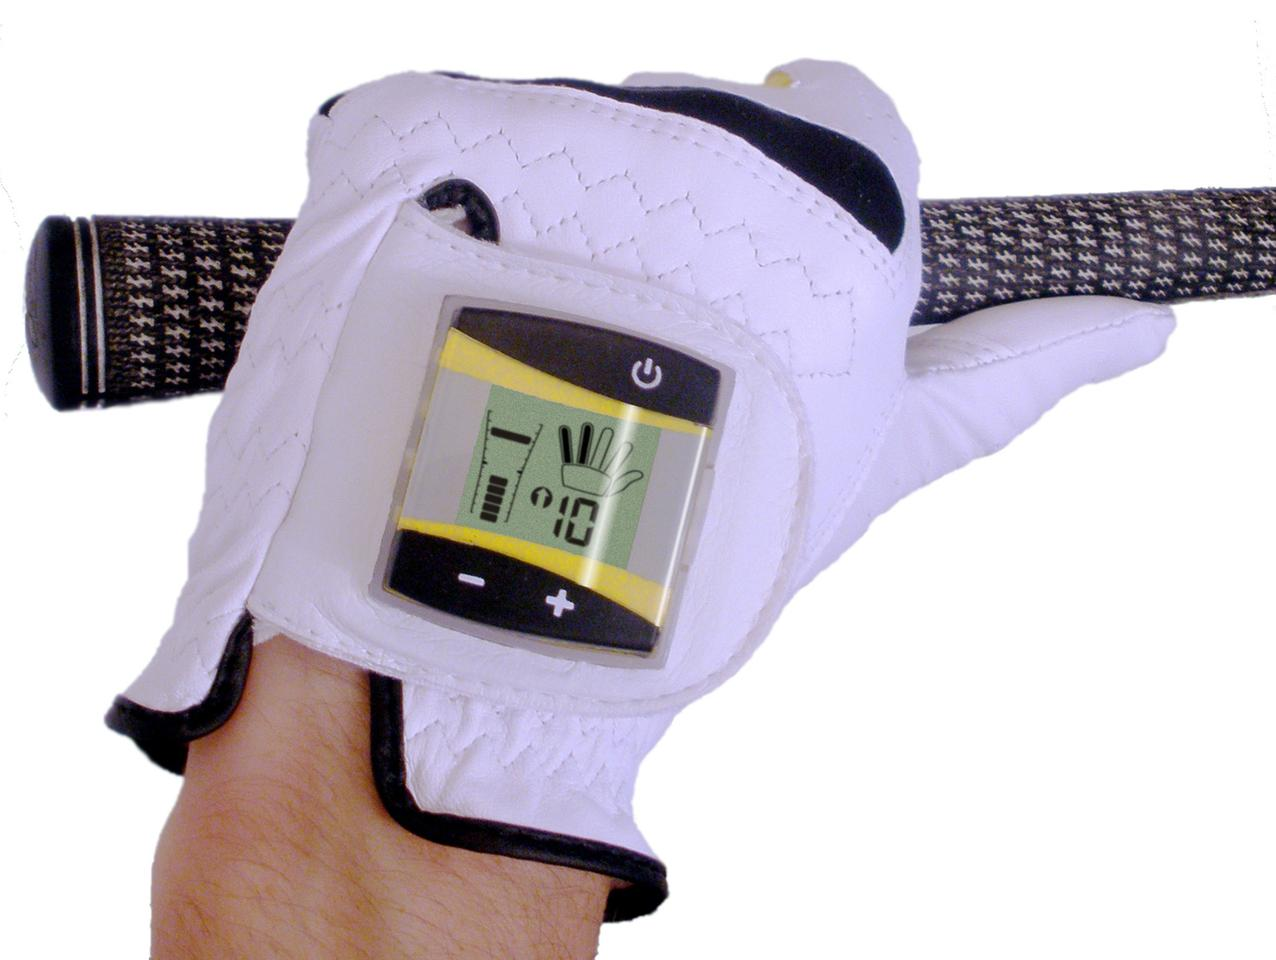 The SensoGlove digital golf glove